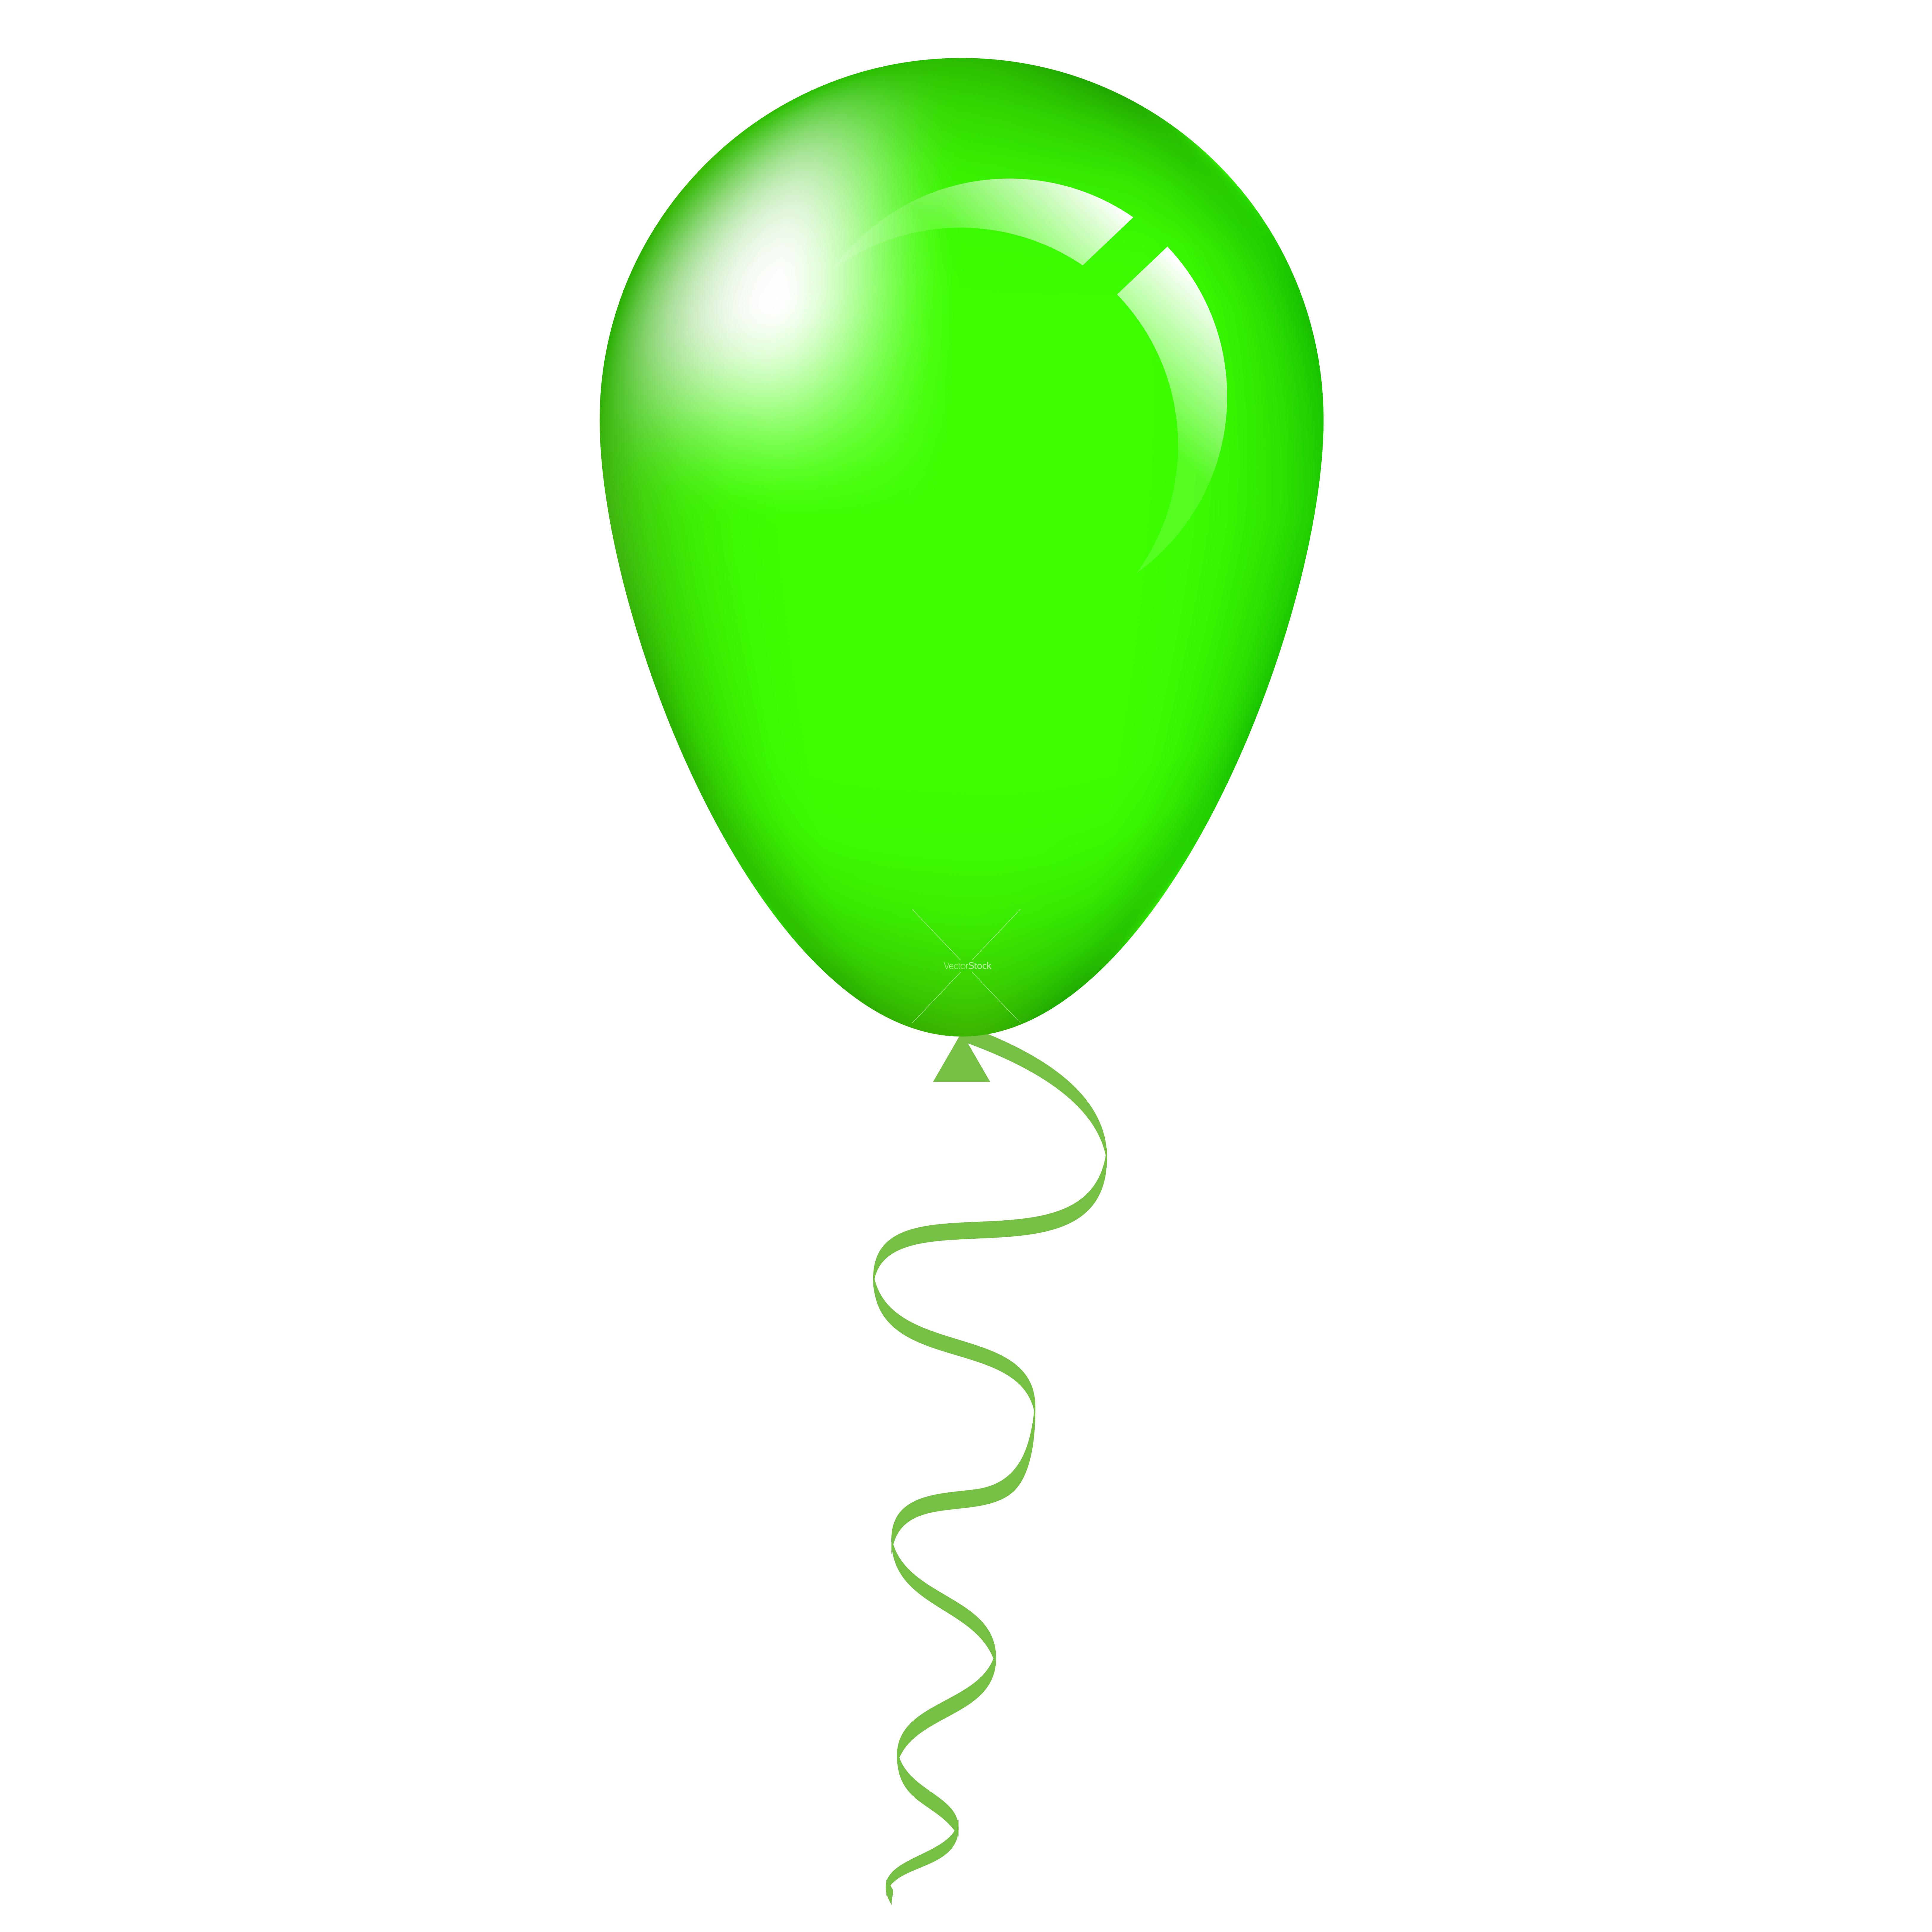 6496x6496 Green Balloon Clipart, Explore Pictures